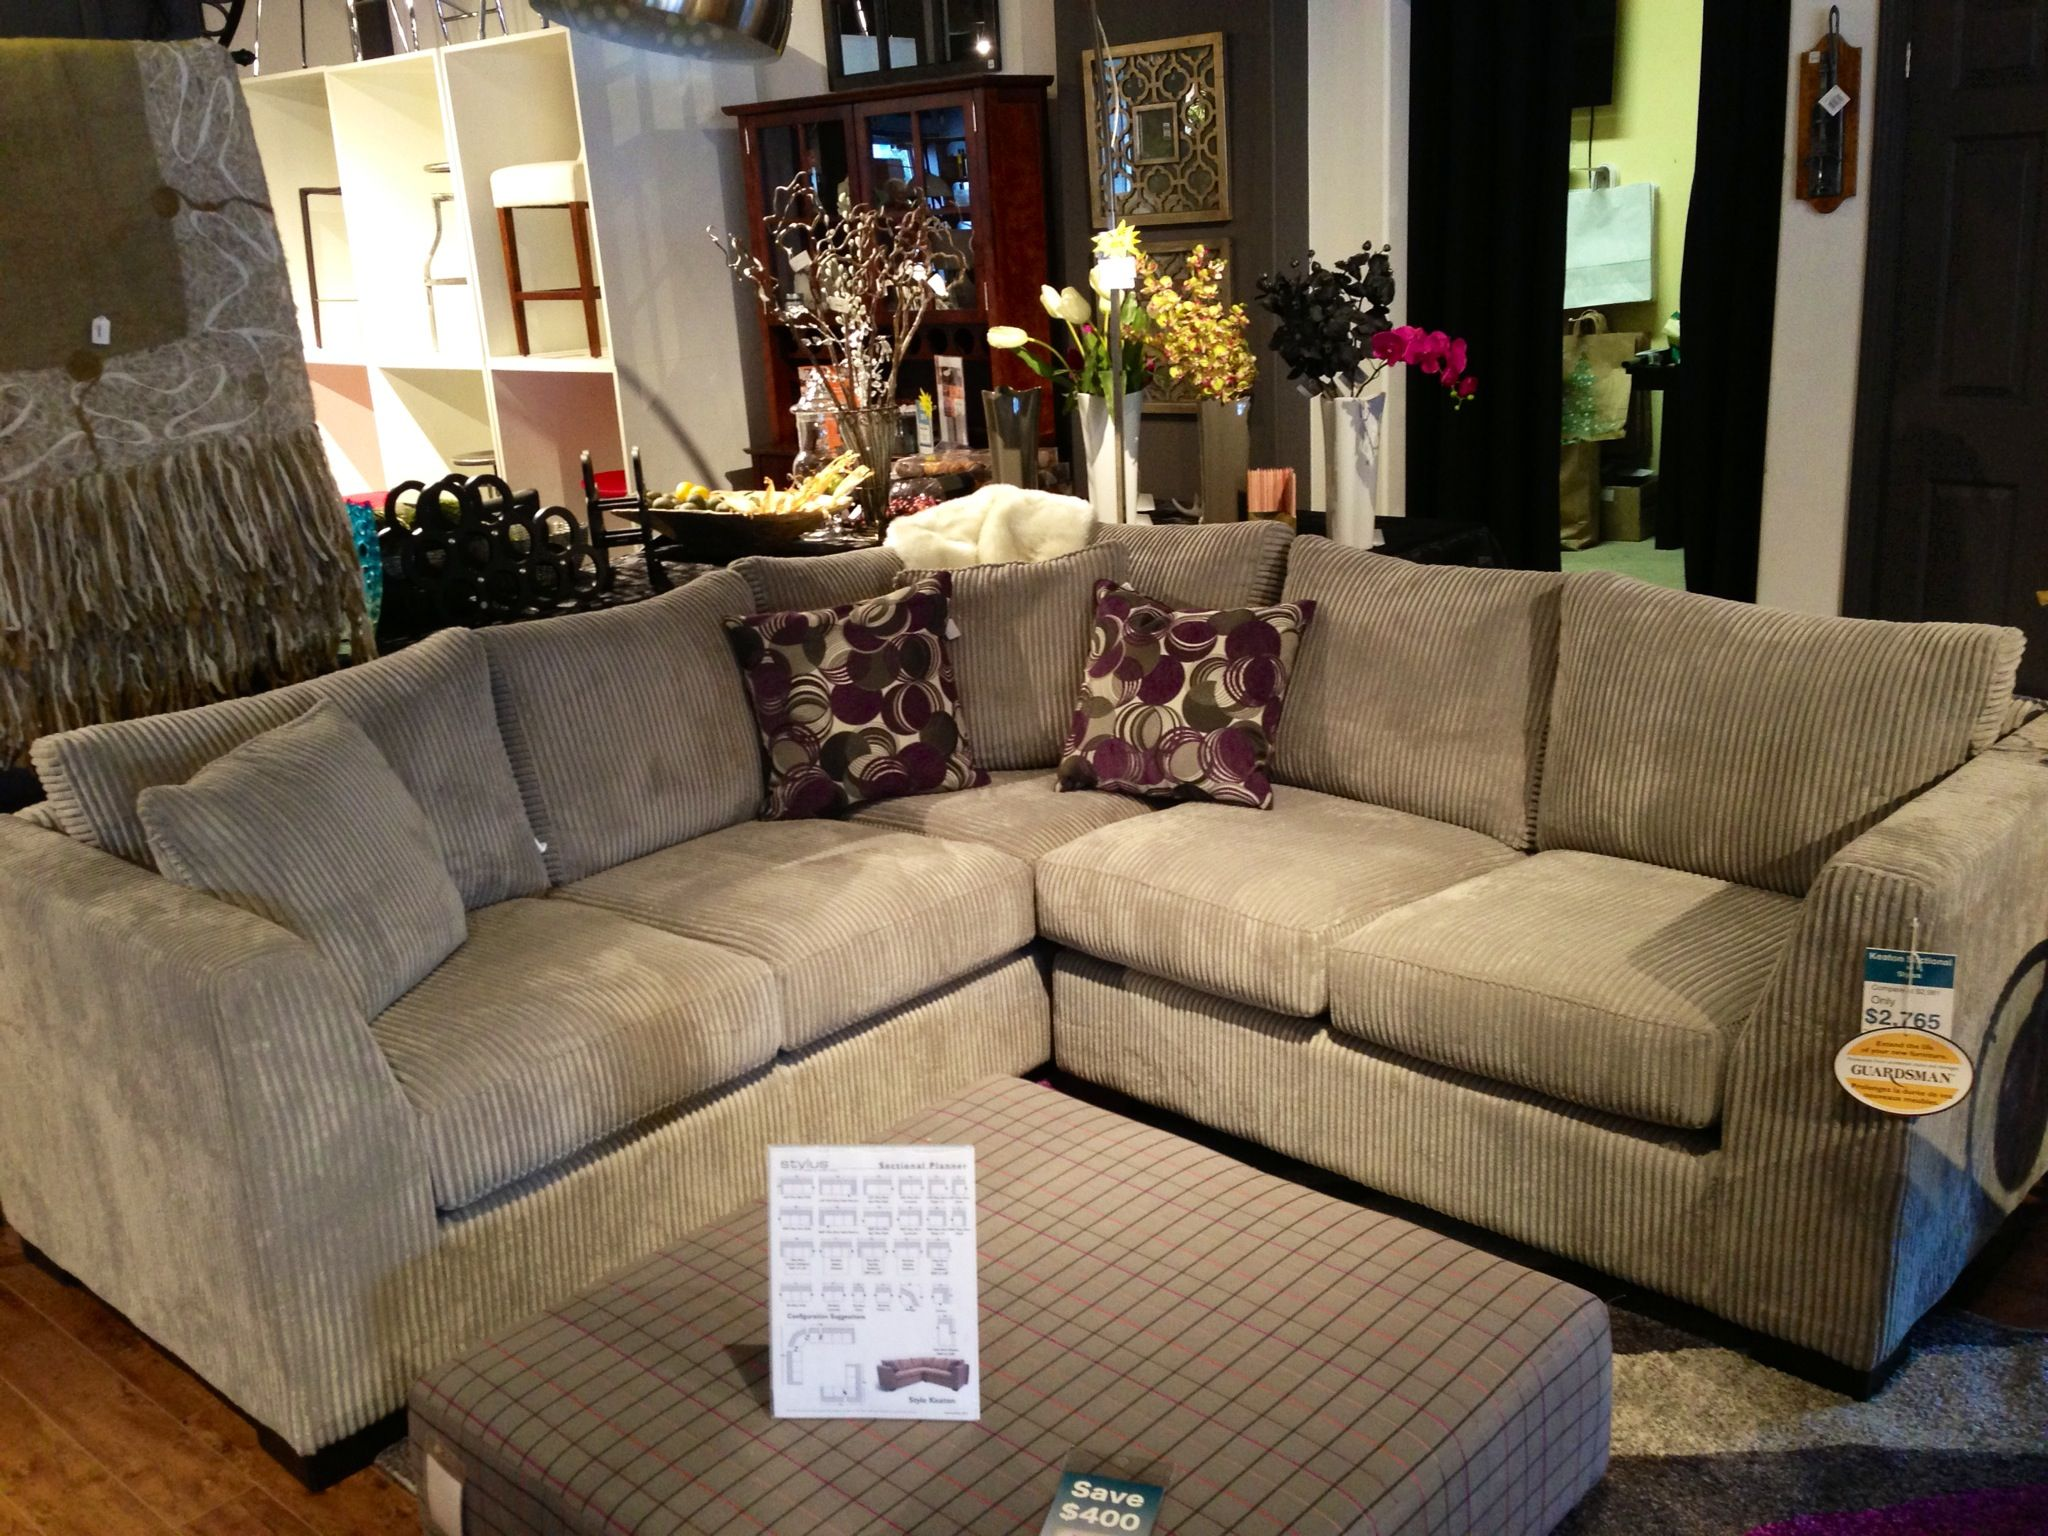 Outstanding Keaton Sofa Sectional By Stylus Canadian Company Featured Dailytribune Chair Design For Home Dailytribuneorg